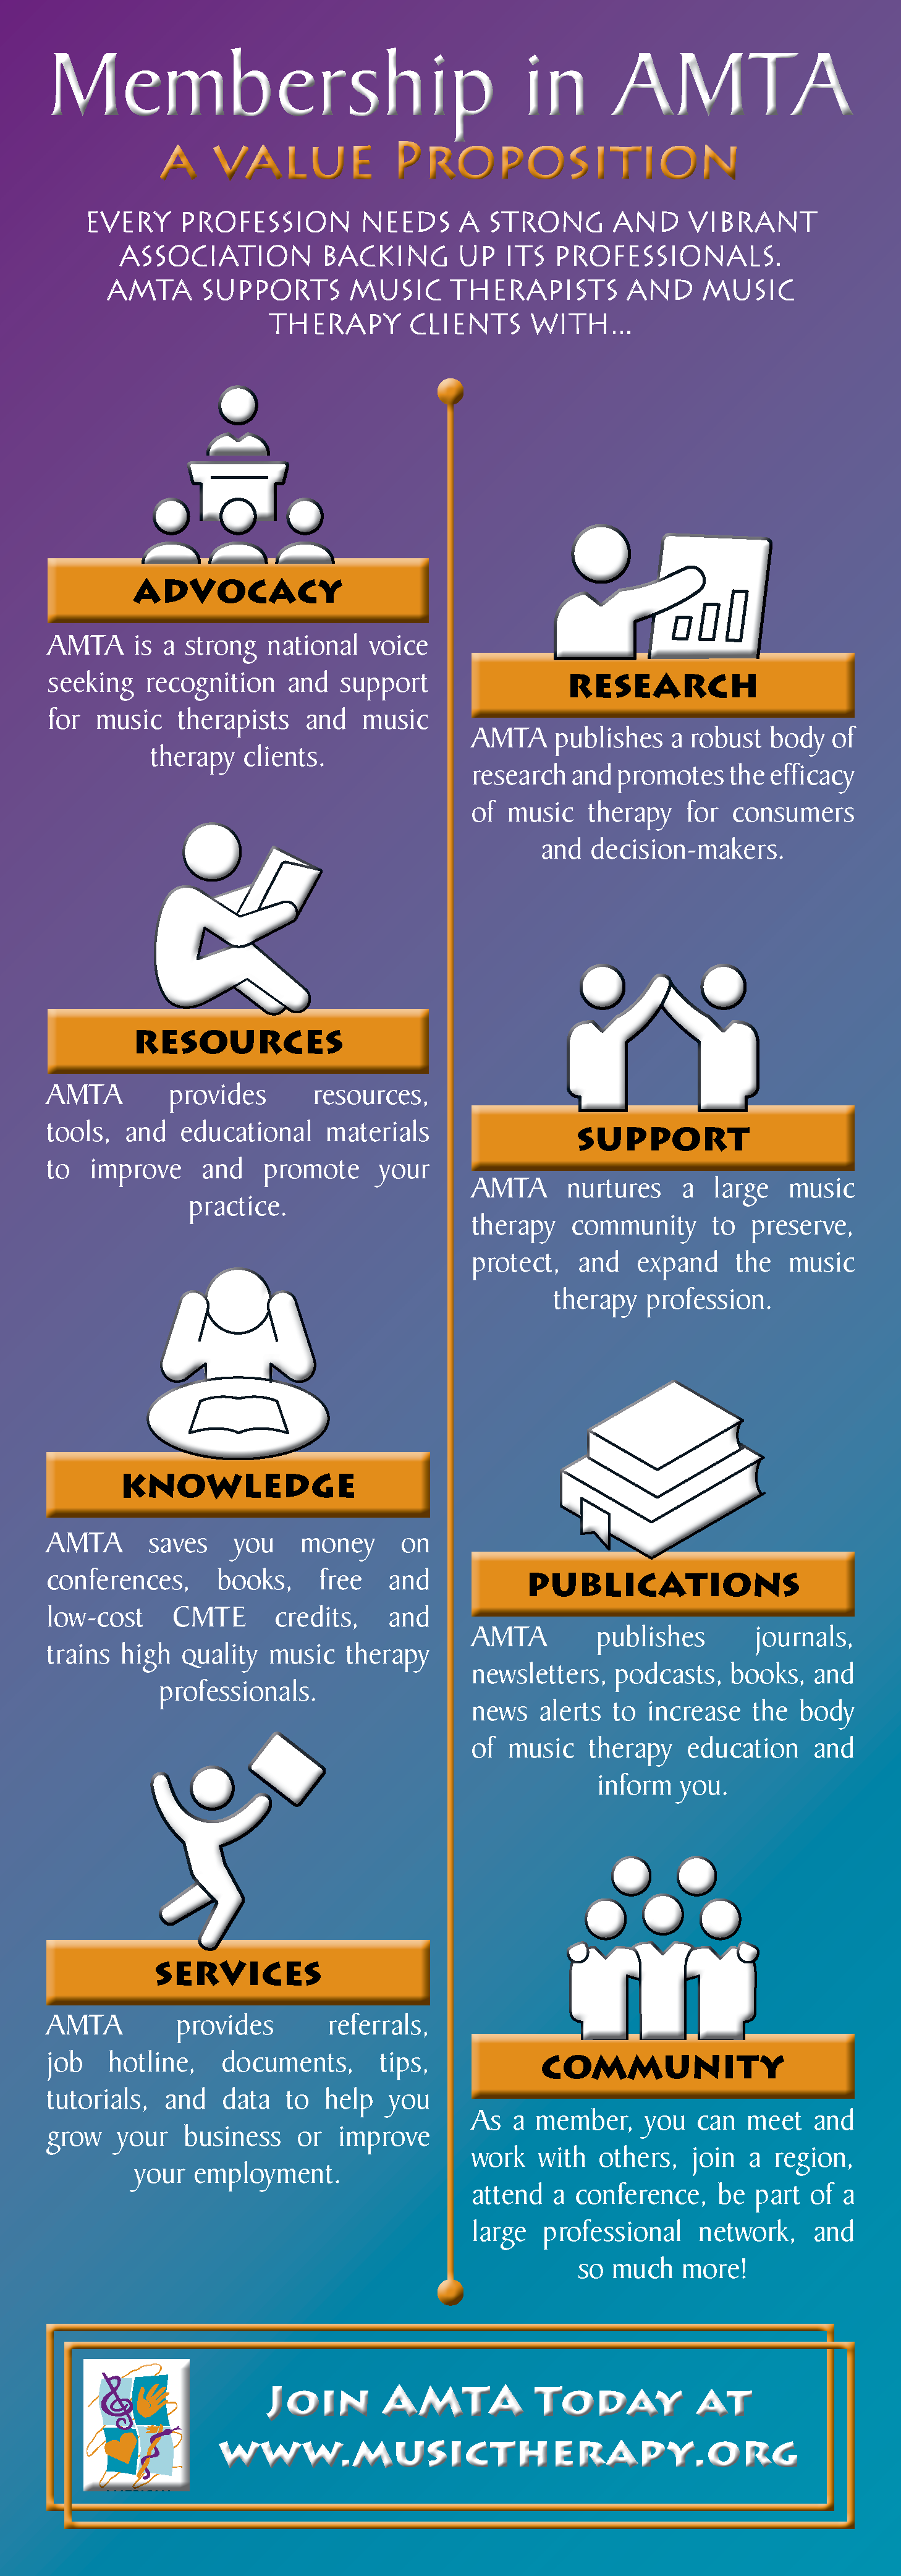 Every profession needs a strong and vibrant association backing up its professionals. AMTA supports music therapists and music therapy clients with... Advocacy, Research, Resources, Support, Knowledge, Publications, Services, Community. Join AMTA Today at www.musictherapy.org